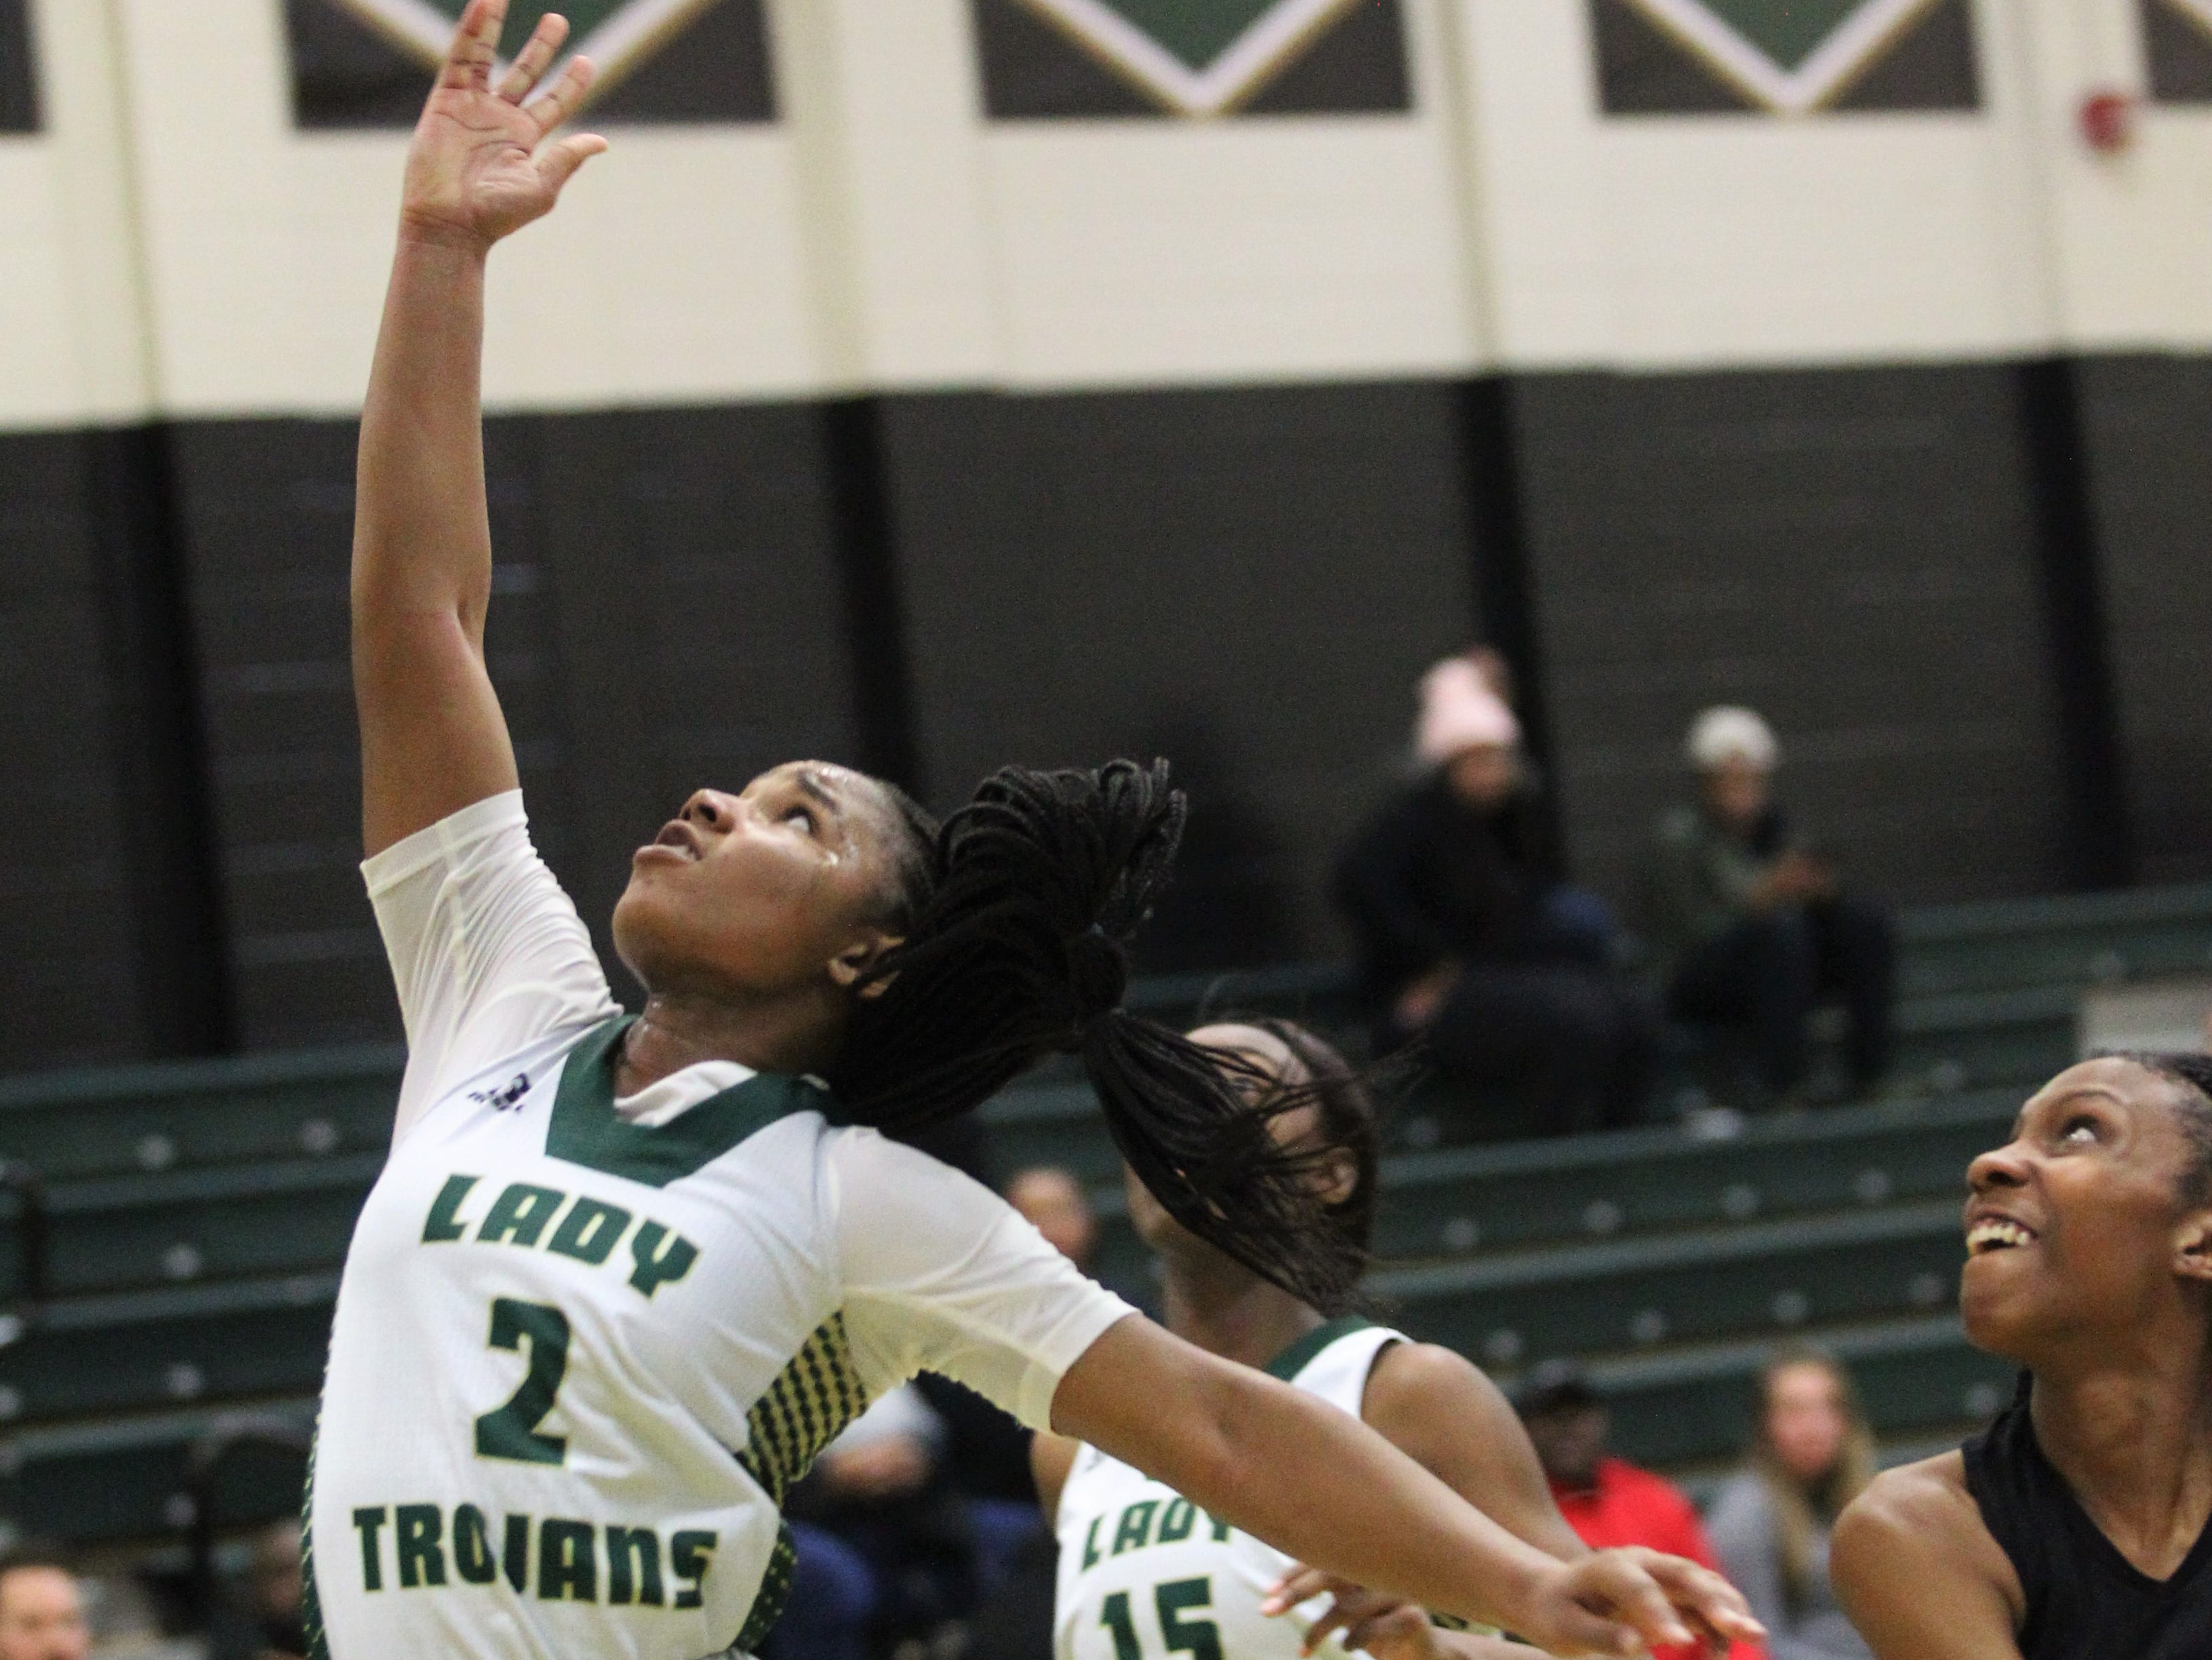 Lincoln's Erin turral scored 41 points as Lincoln's girls basketball team beat Godby 67-32 on Jan. 29, 2019.